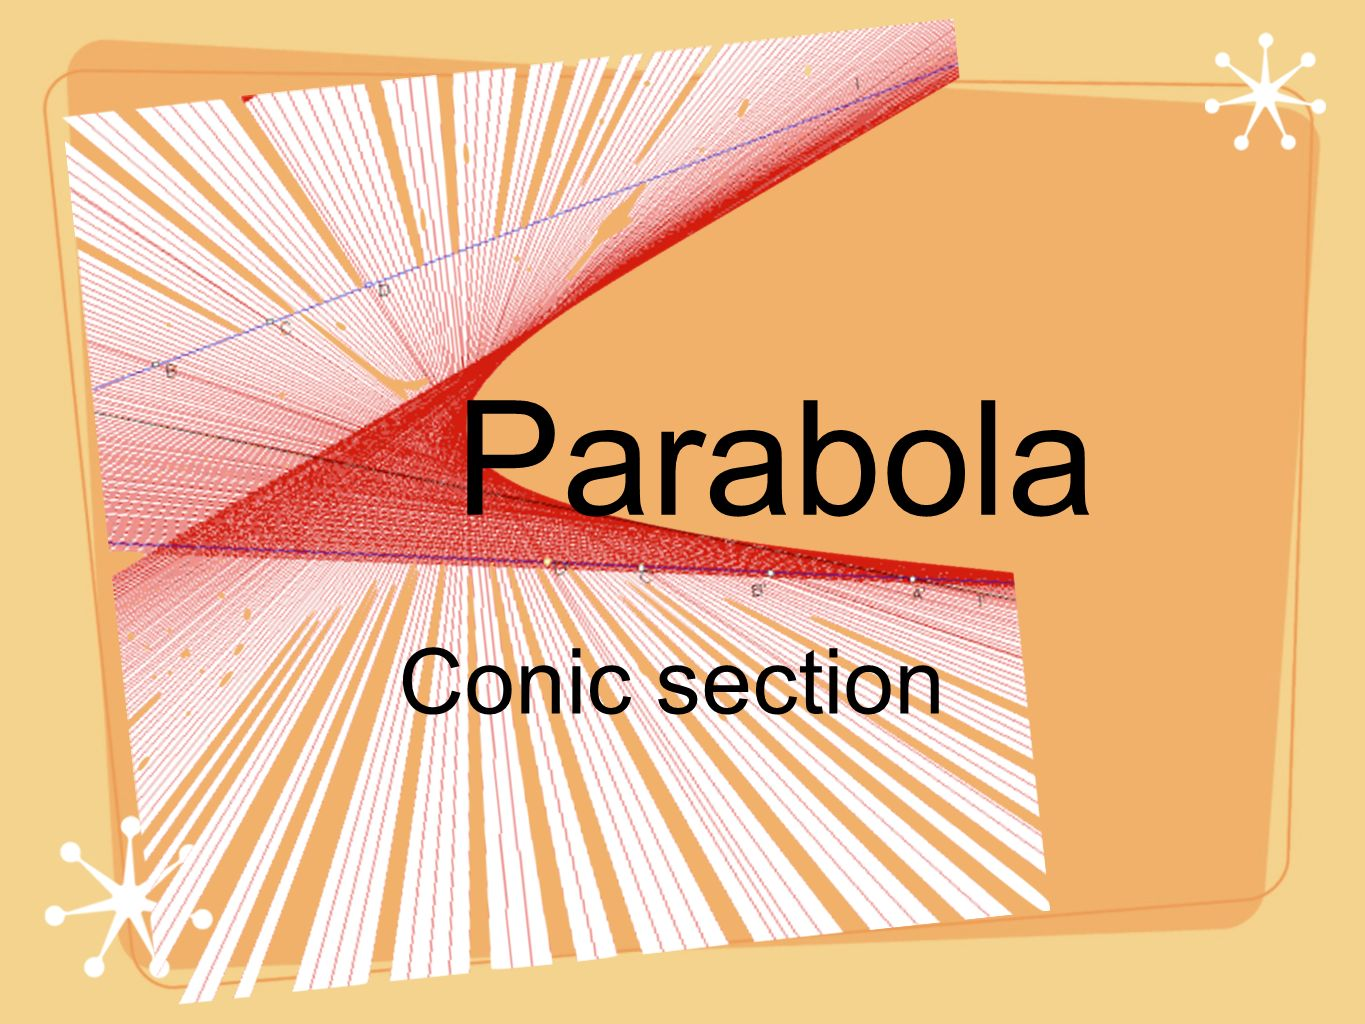 Parabola Conic section